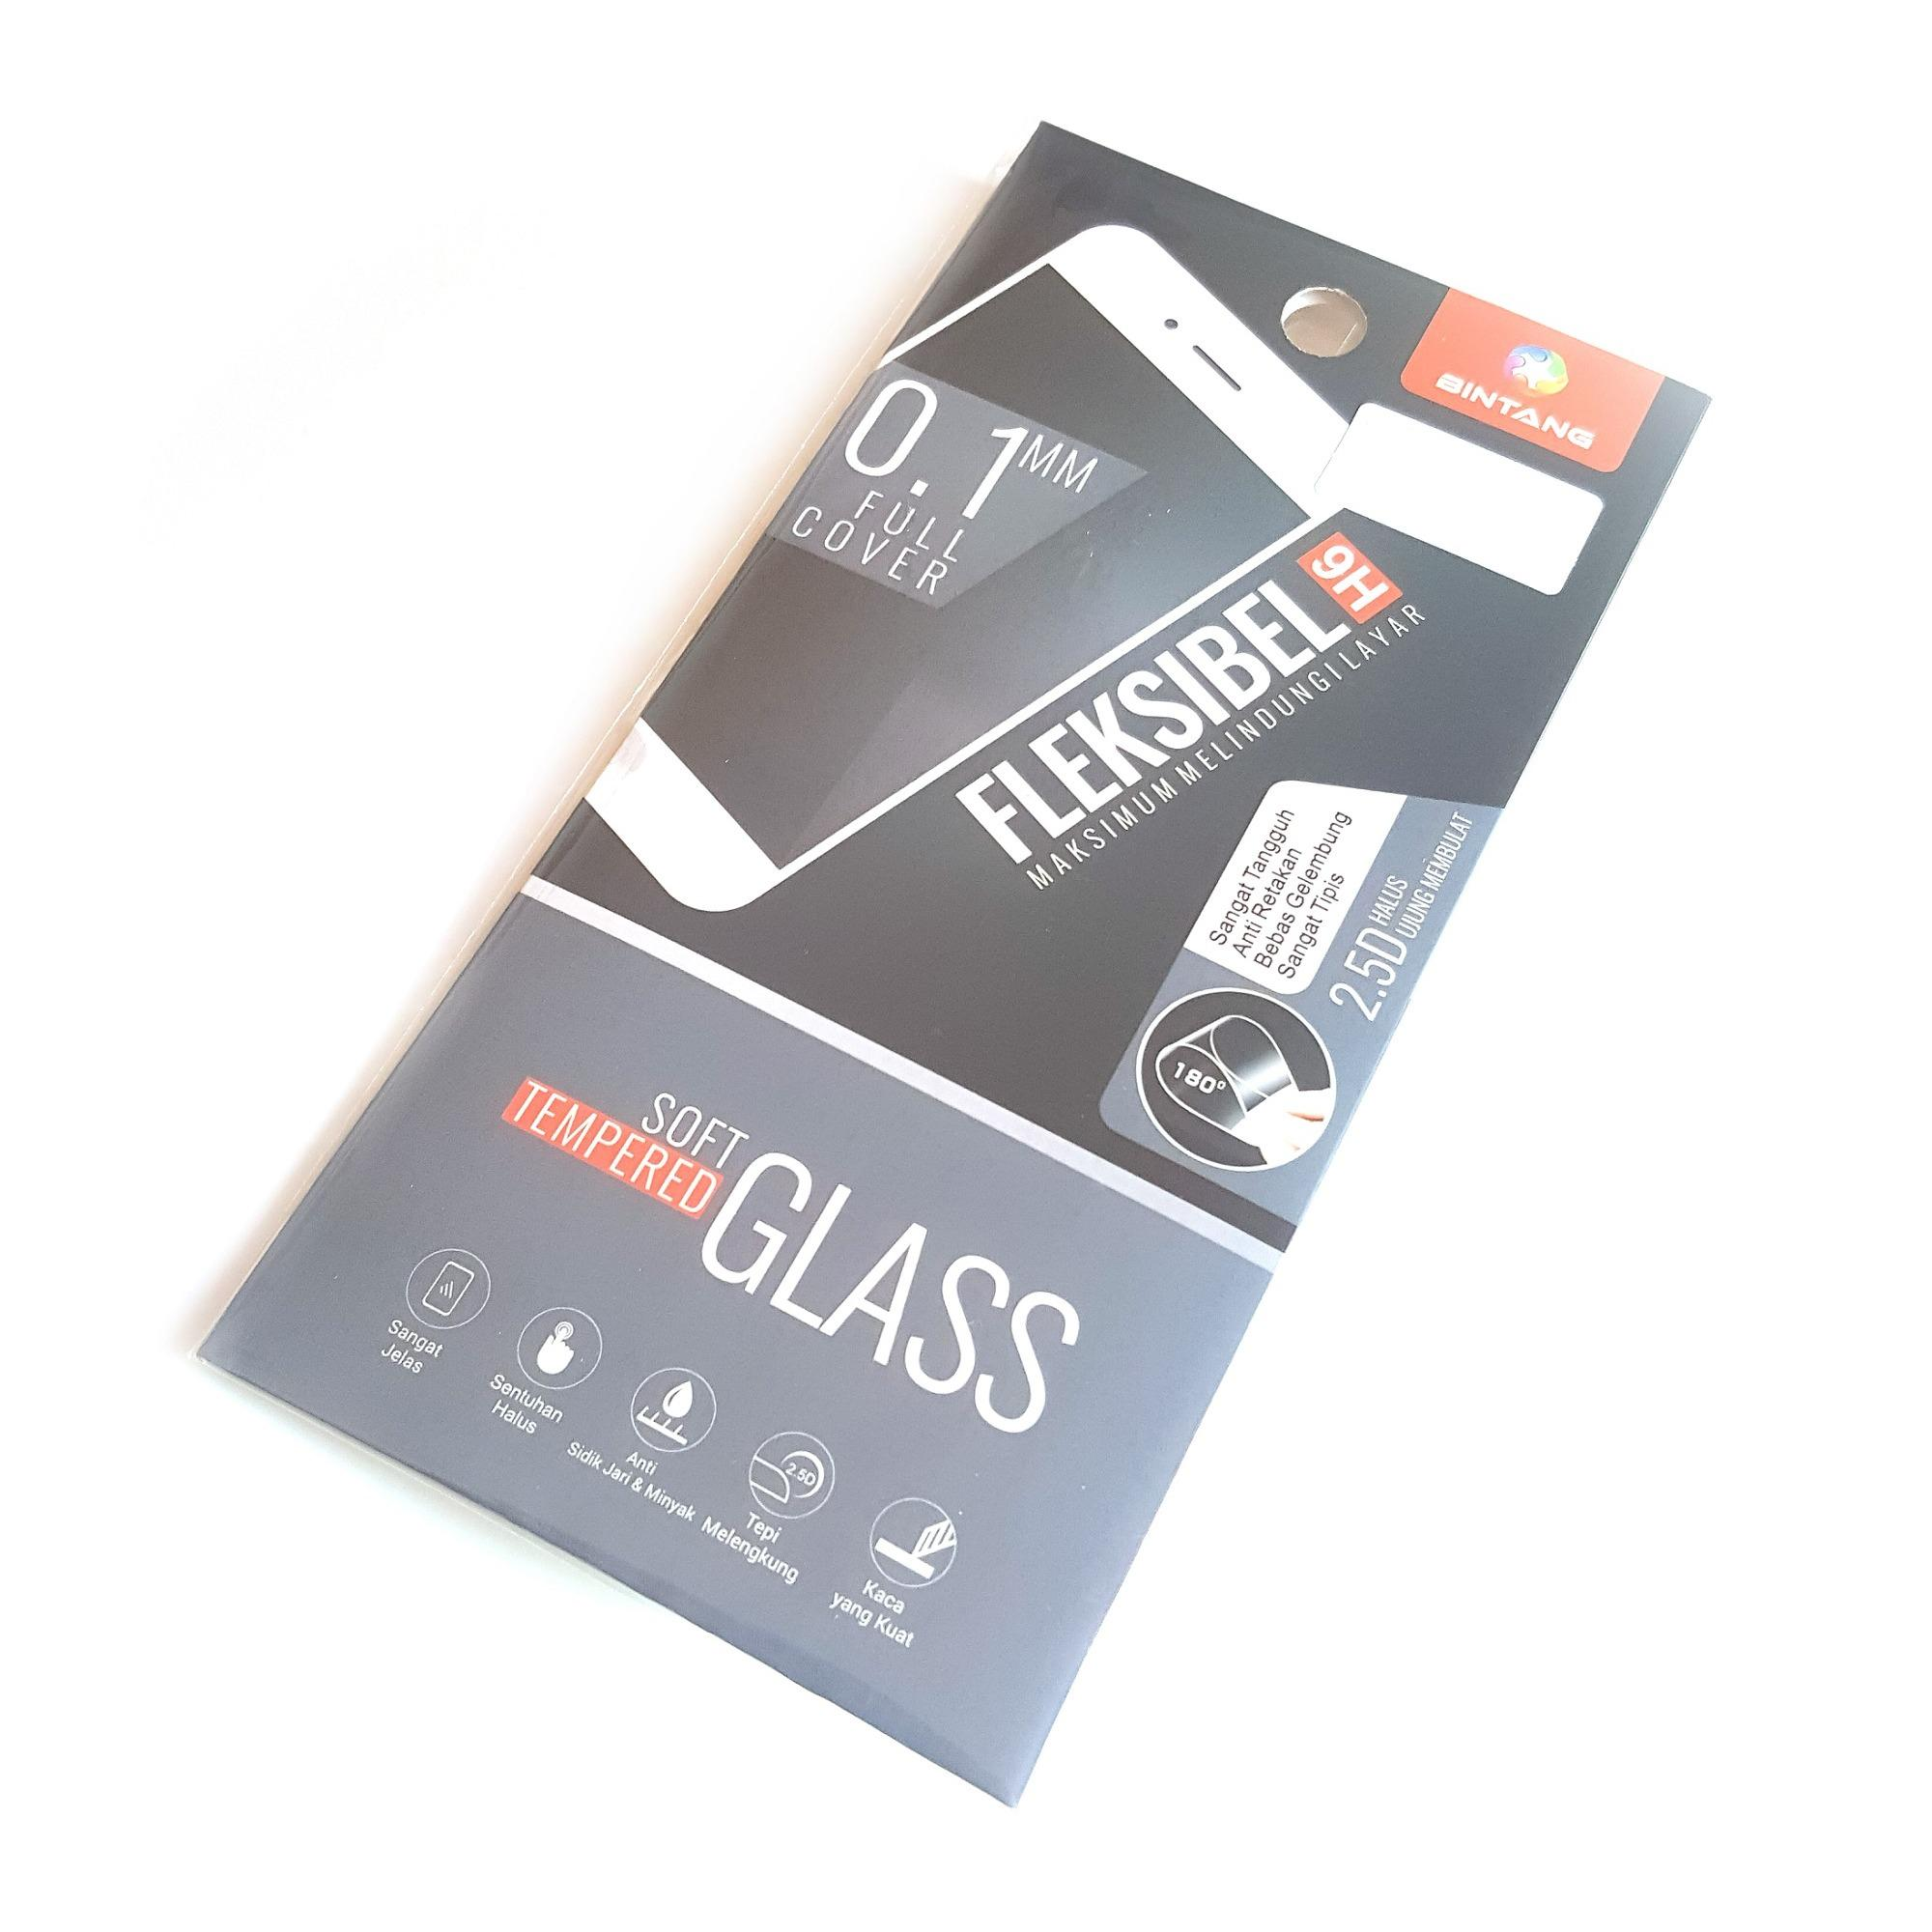 Soft Tempered Glass Protector Iphone 6 / iphone 6s 4.7 Inch Flexible 0.1 mm Apple Anti